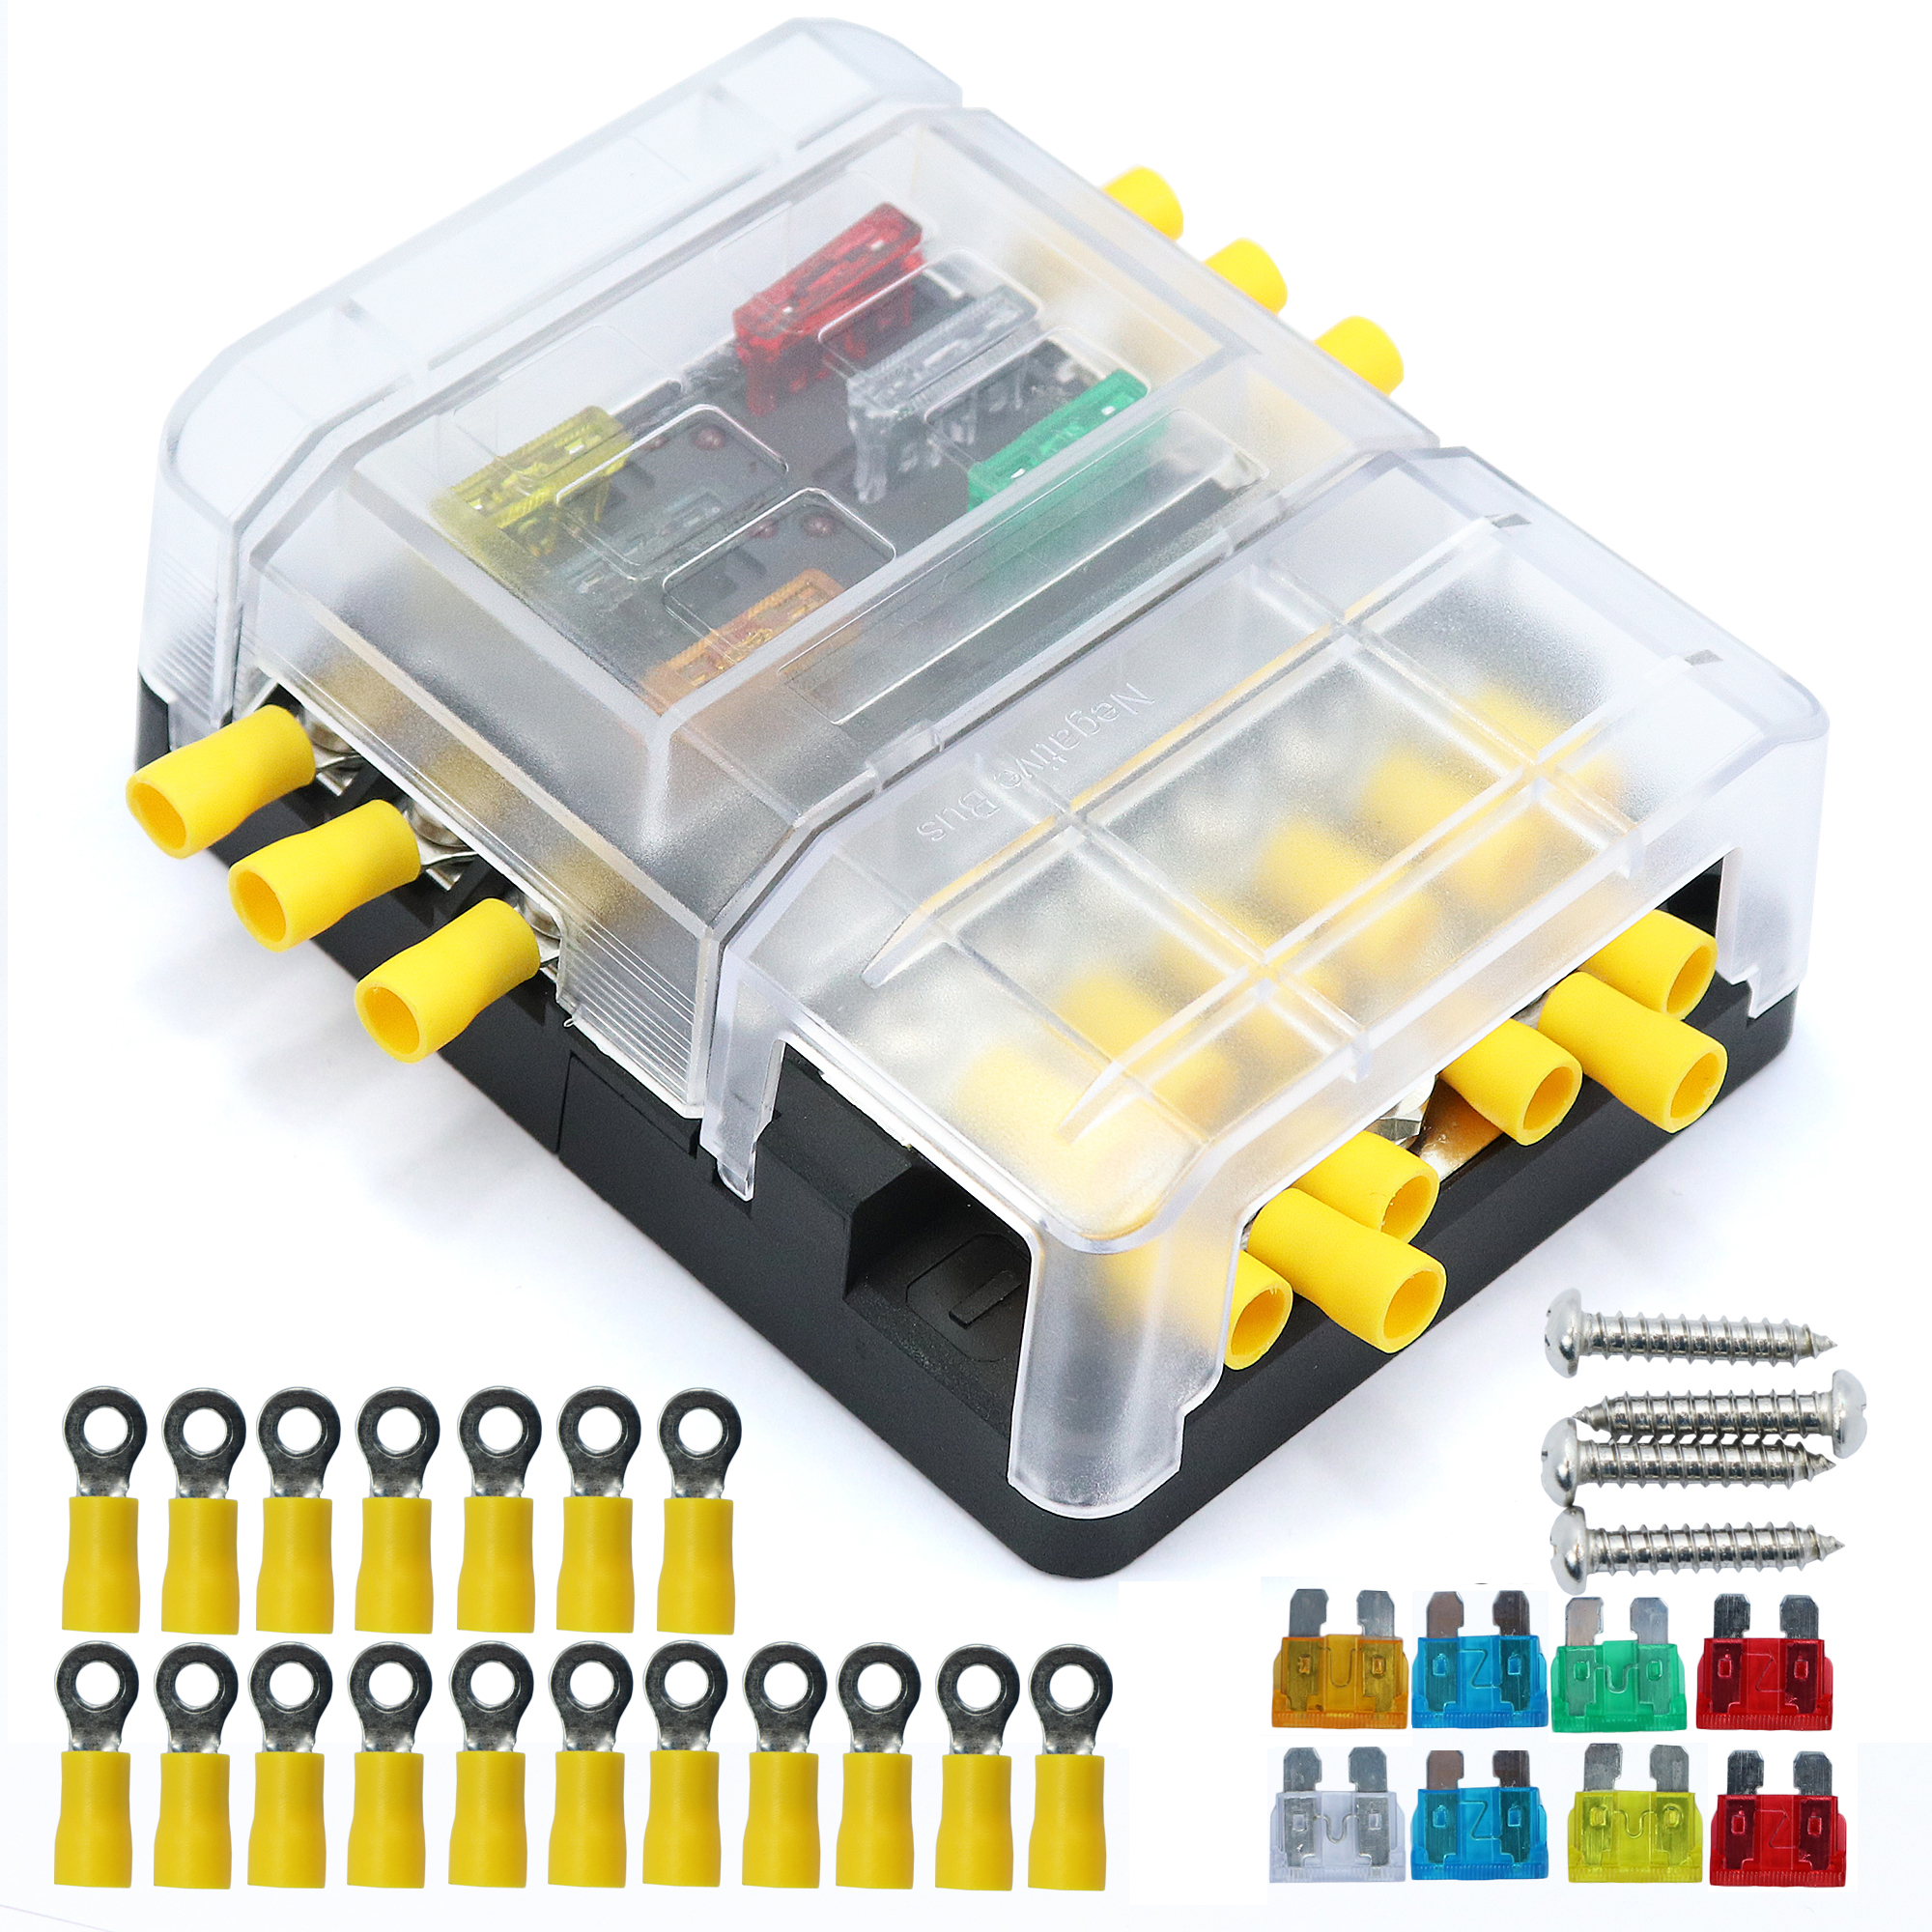 hight resolution of details about car boat 6 way junction box fuses holder terminal kits with waterproof cover